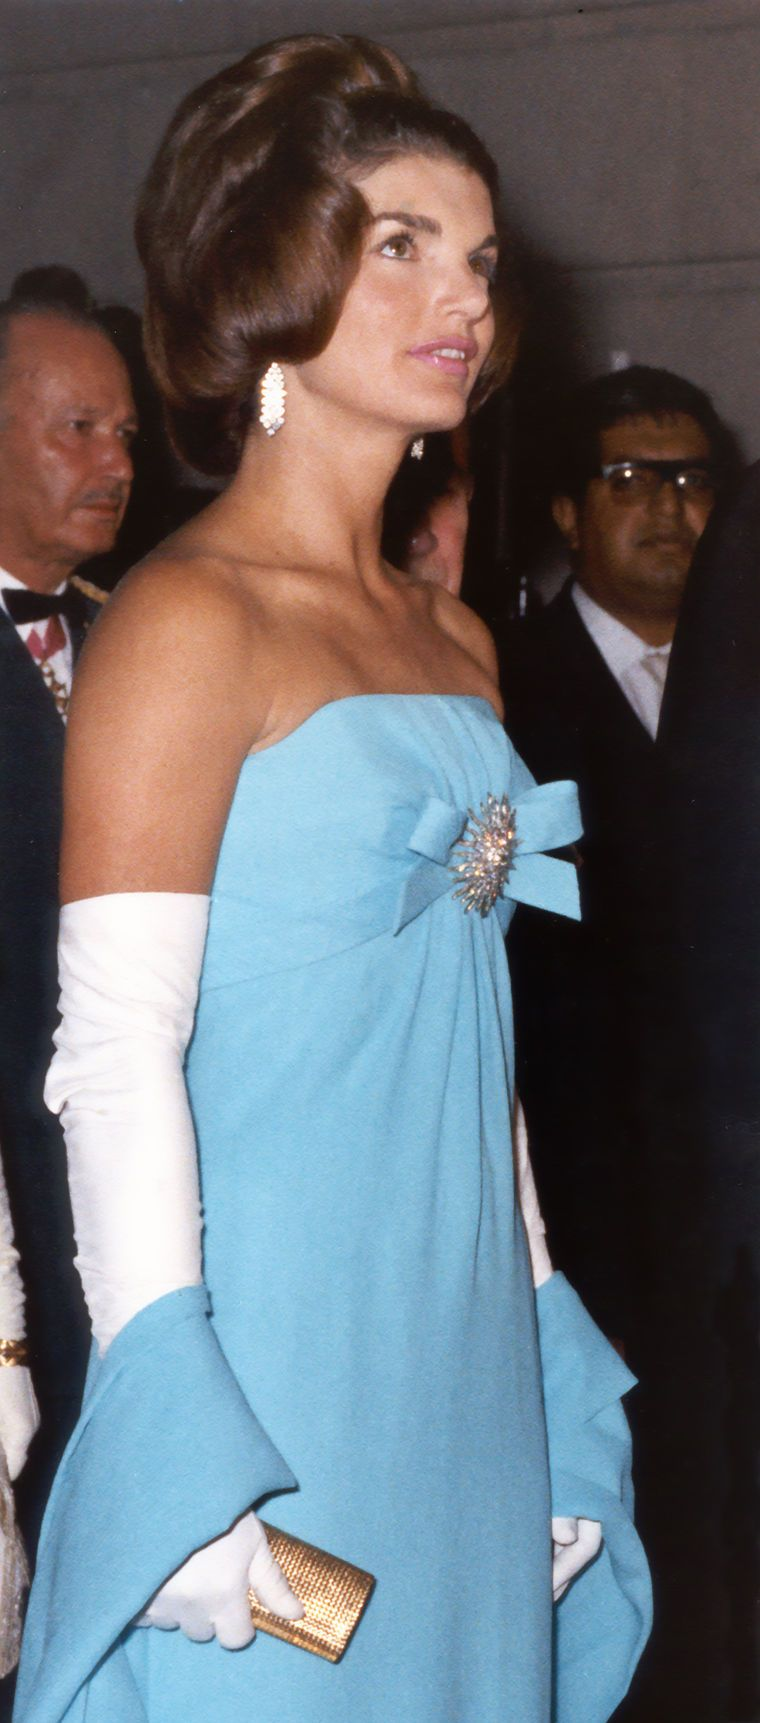 Jackie Kennedy in azure blue silk crepe Oleg Cassini dressed for a Foreign Ministry Reception in Mexico City June 29, 1962. Love the hair. The whole ensemble is effortless perfection. On a serious note... Jacqueline Bouvier Kennedy played a historic role during the Kennedy administration—in restoring the White House, supporting the arts, promoting historic preservation.